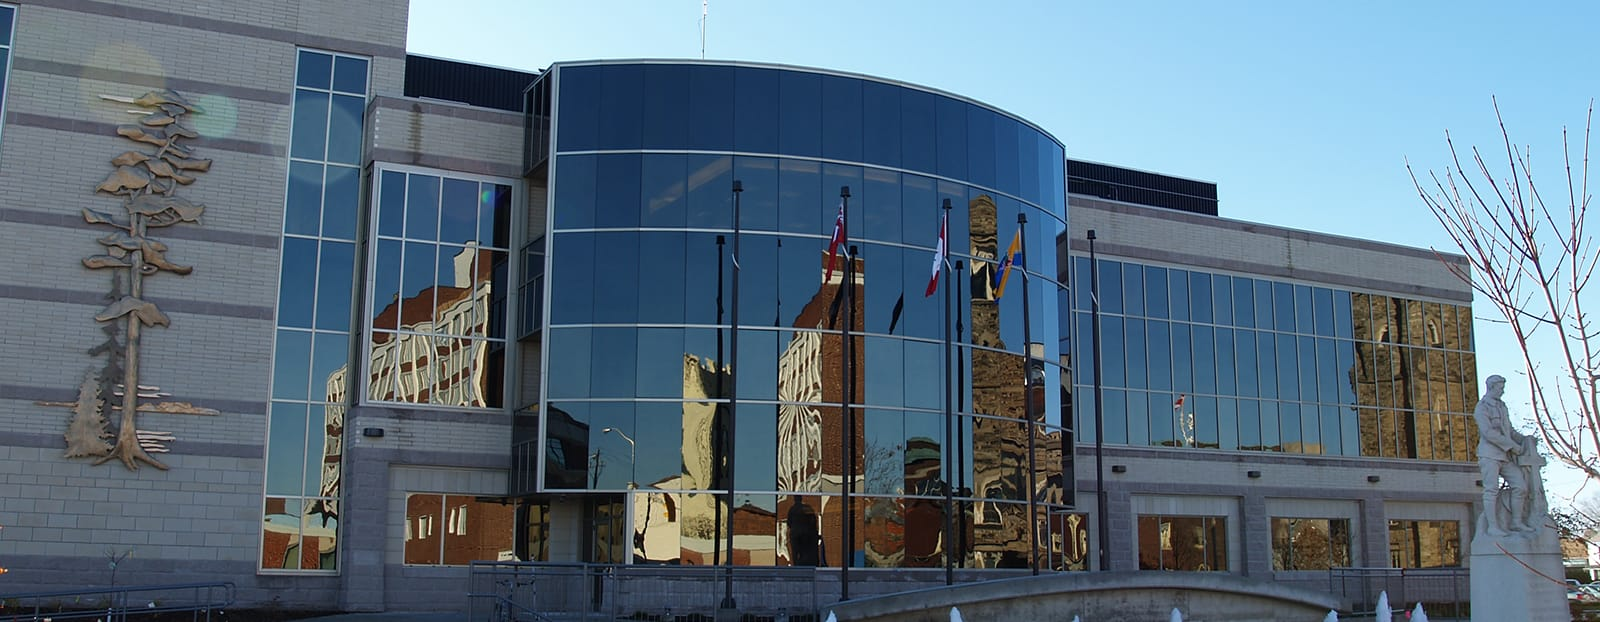 Thunder Bay City Hall